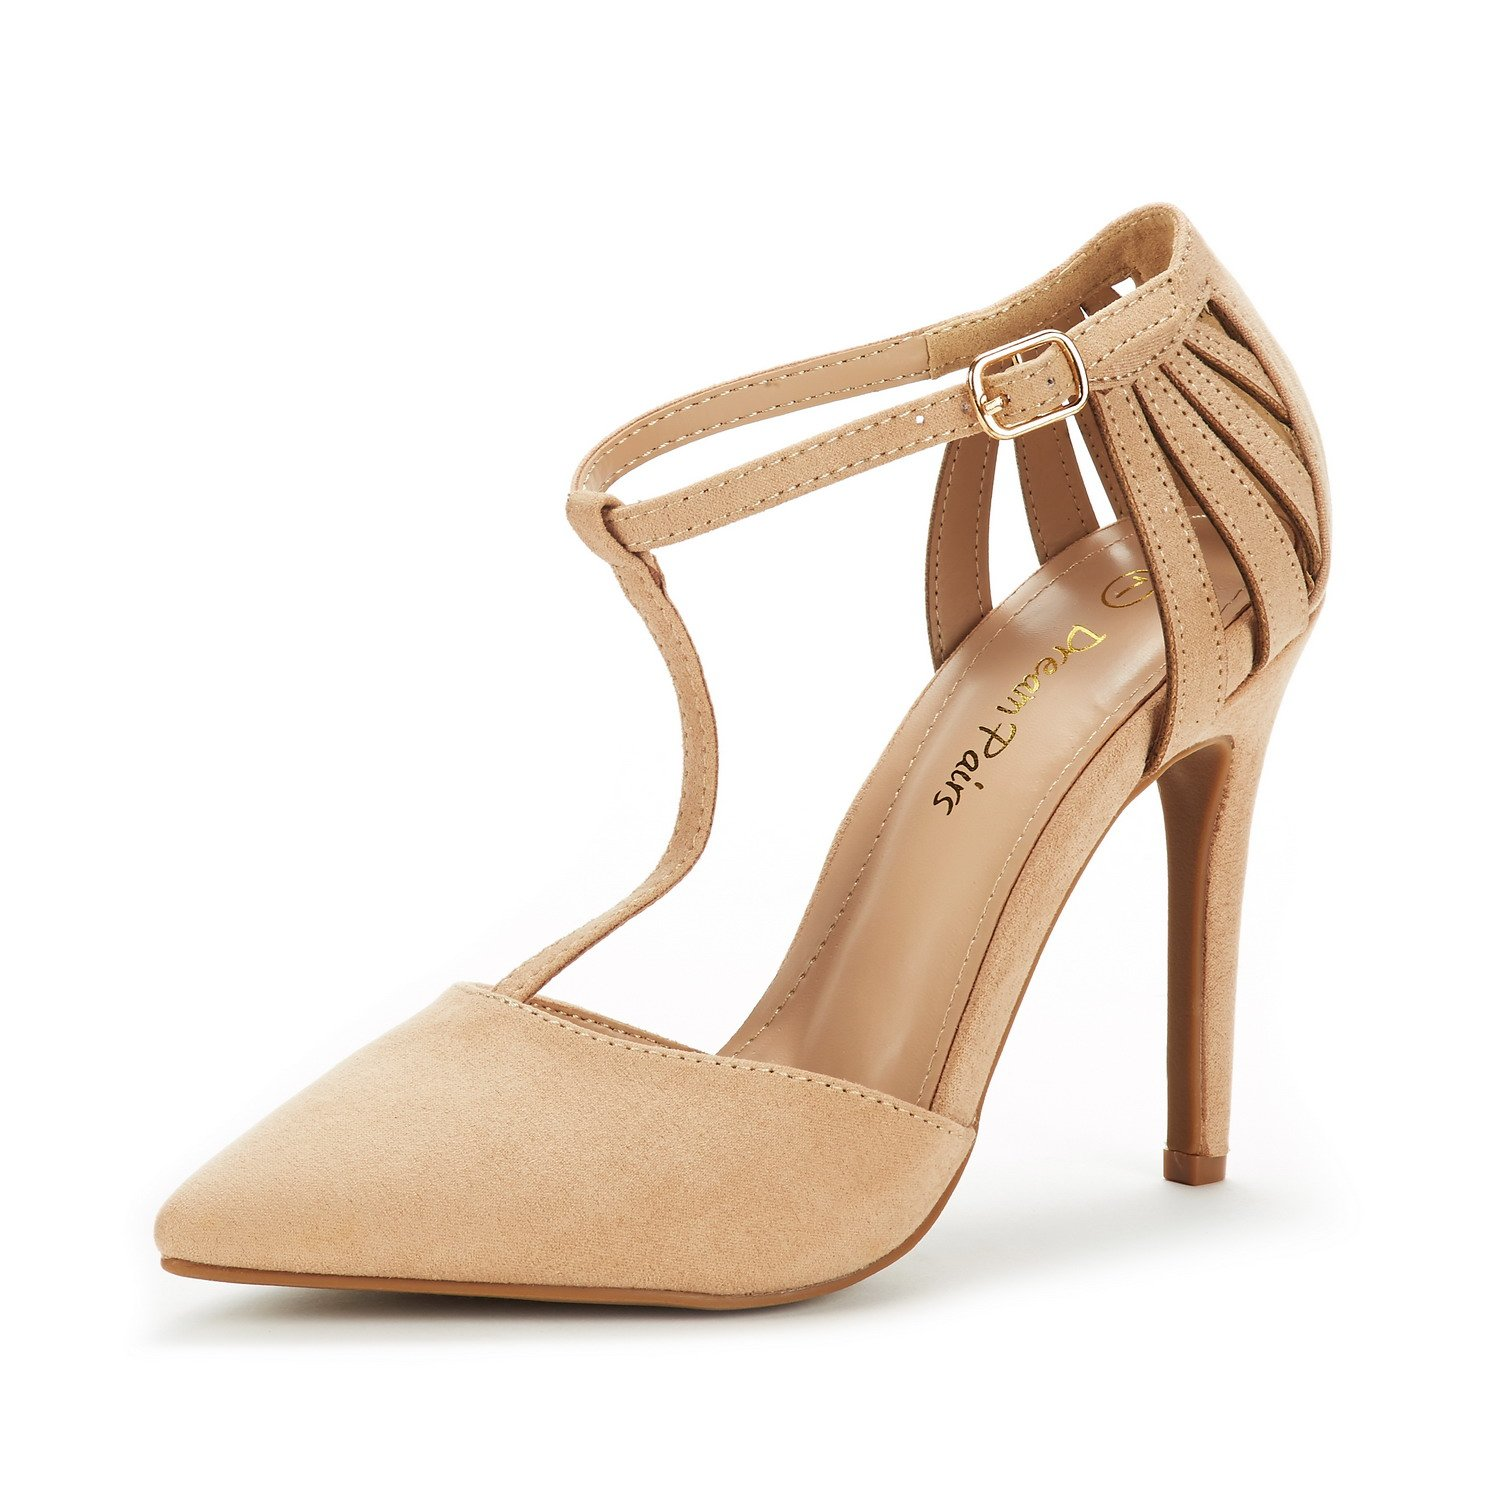 DREAM PAIRS Women's Oppointed-Mary Nude Suede Fashion Dress High Heel Pointed Toe Wedding Pumps Shoes Size 10 M US